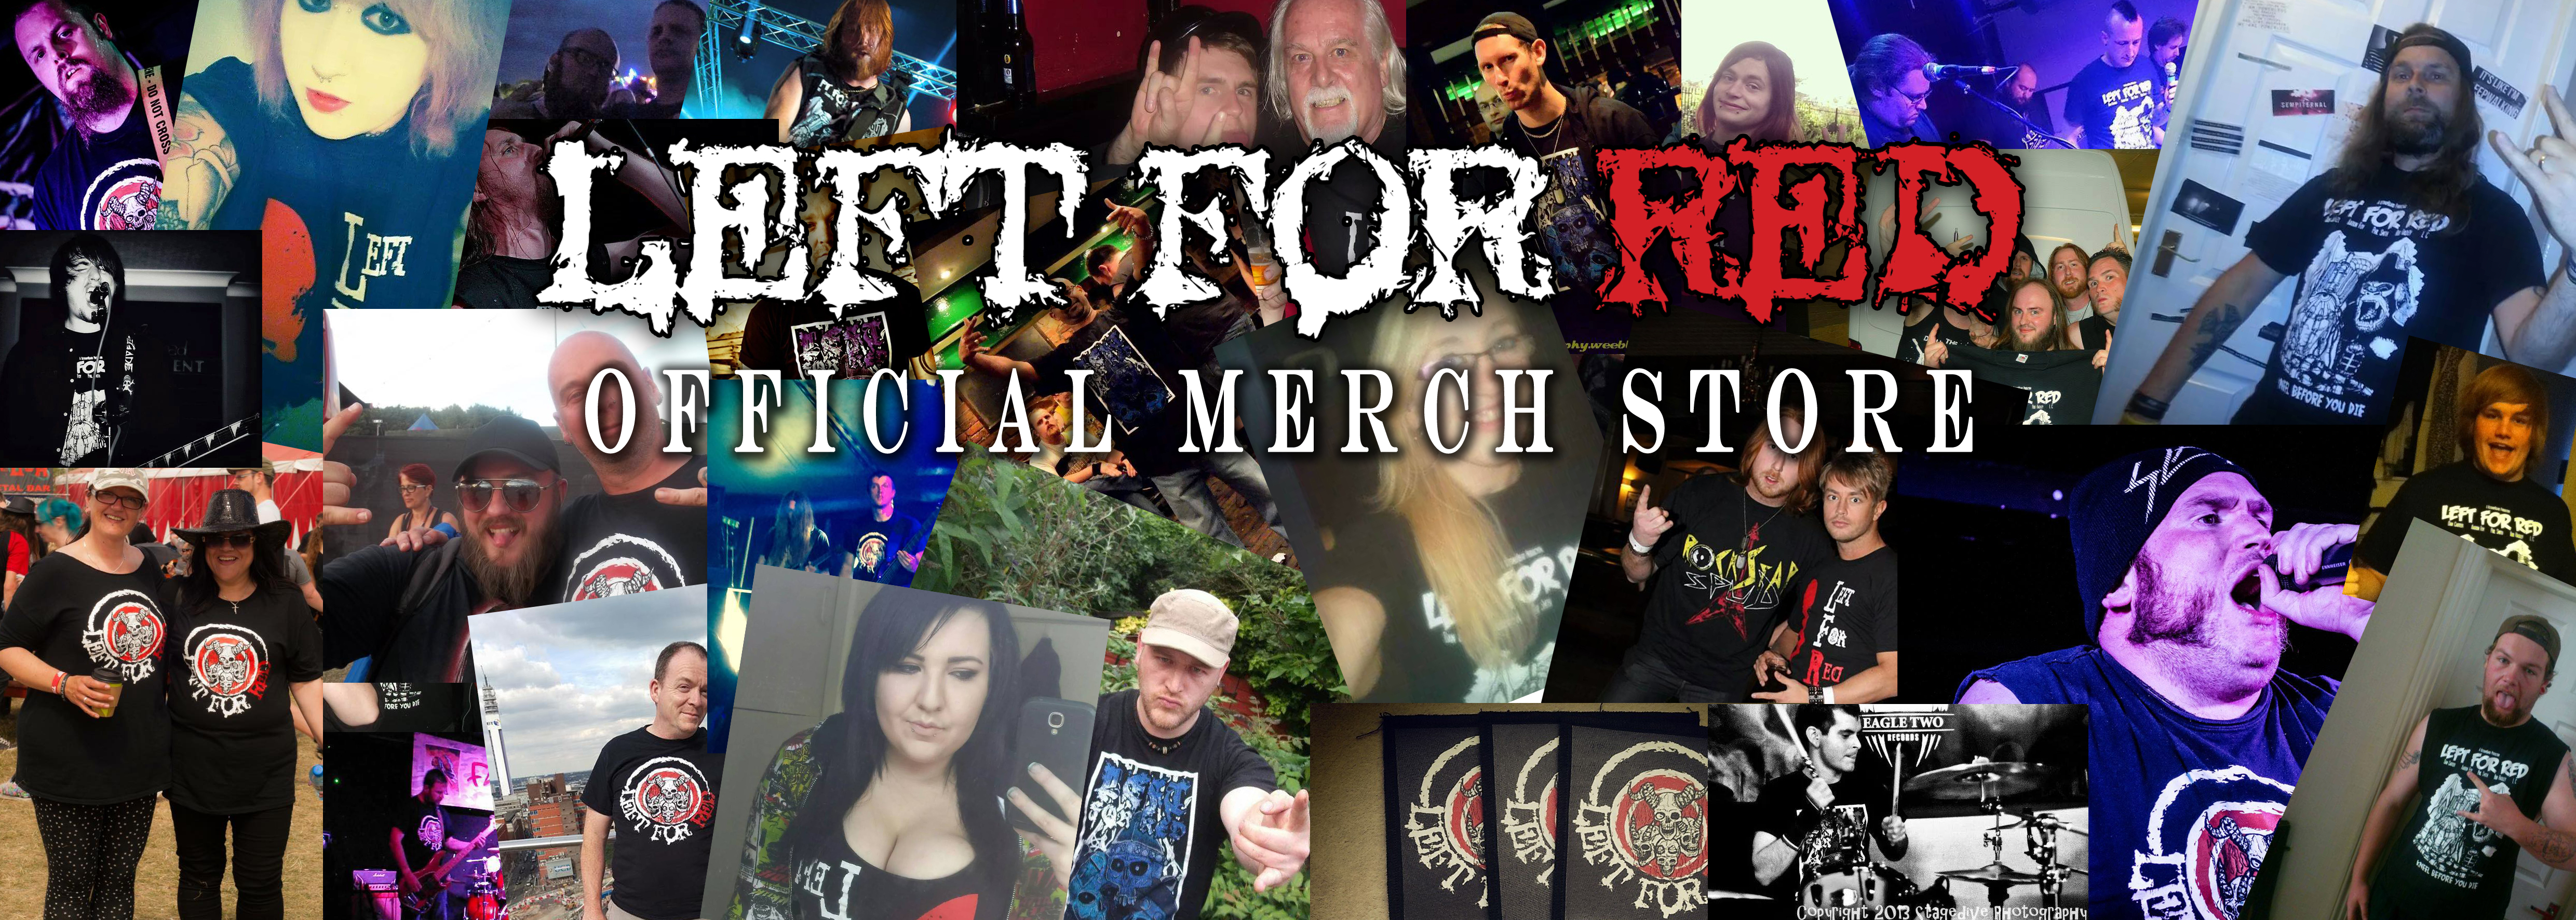 New Left For Red Merch Store now open